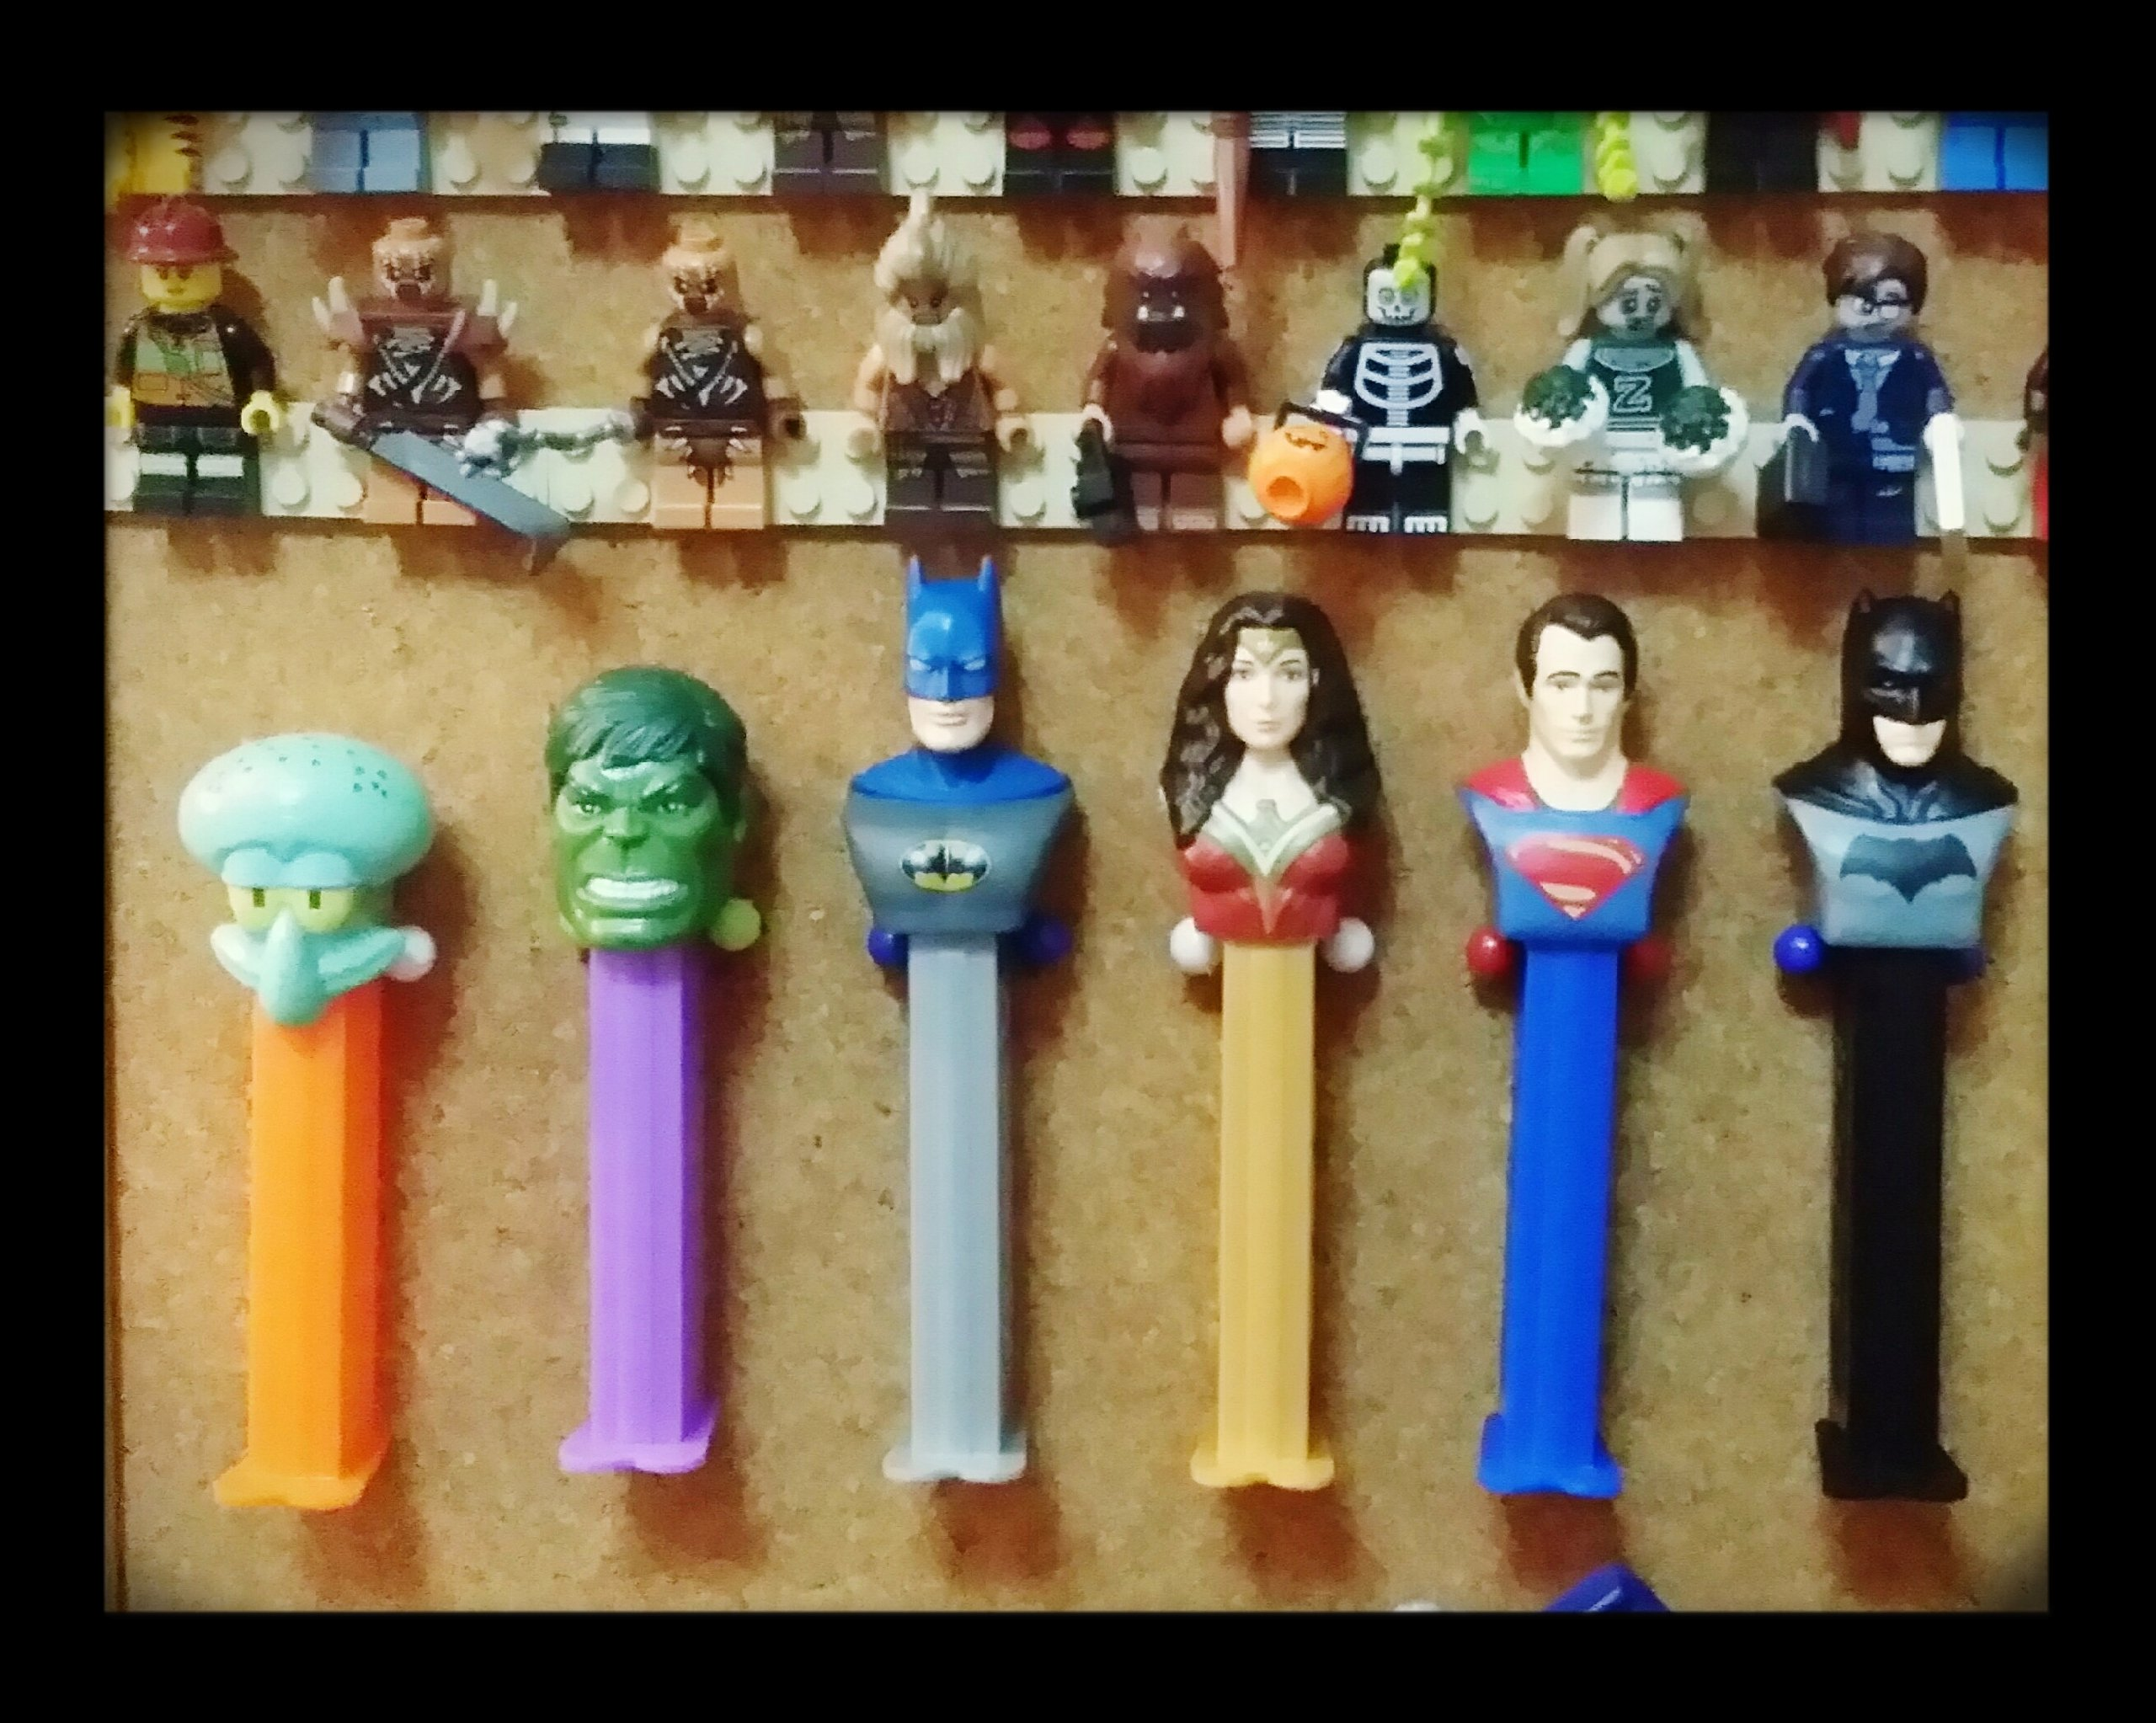 My boy is starting a PEZ collection!